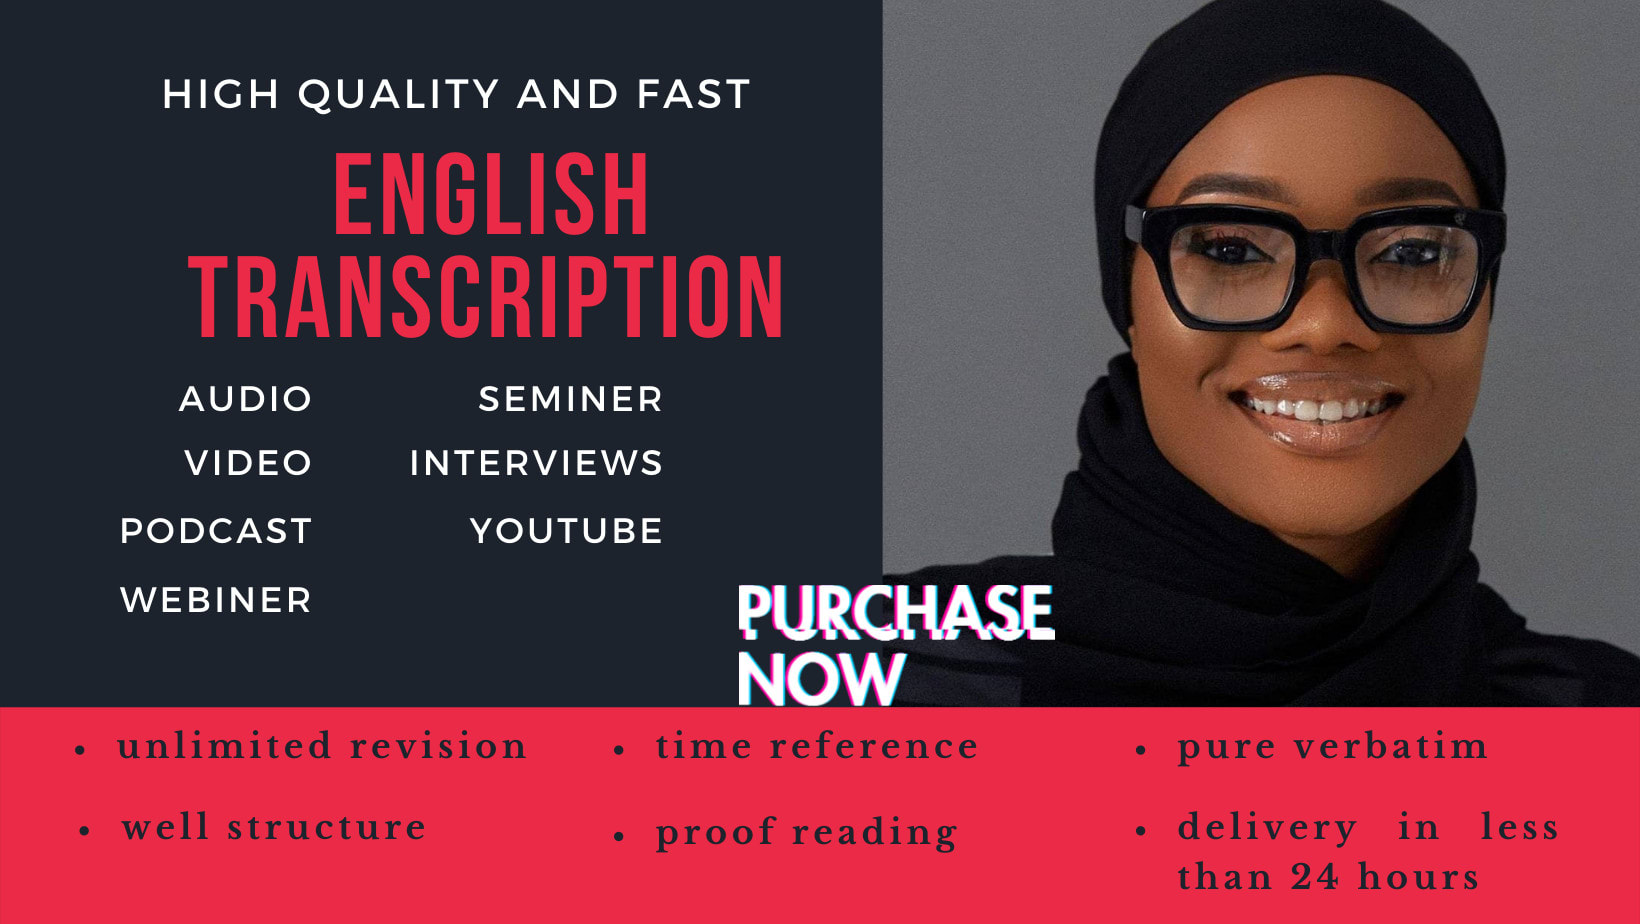 I will provide a flawless english transcript of your audio and video